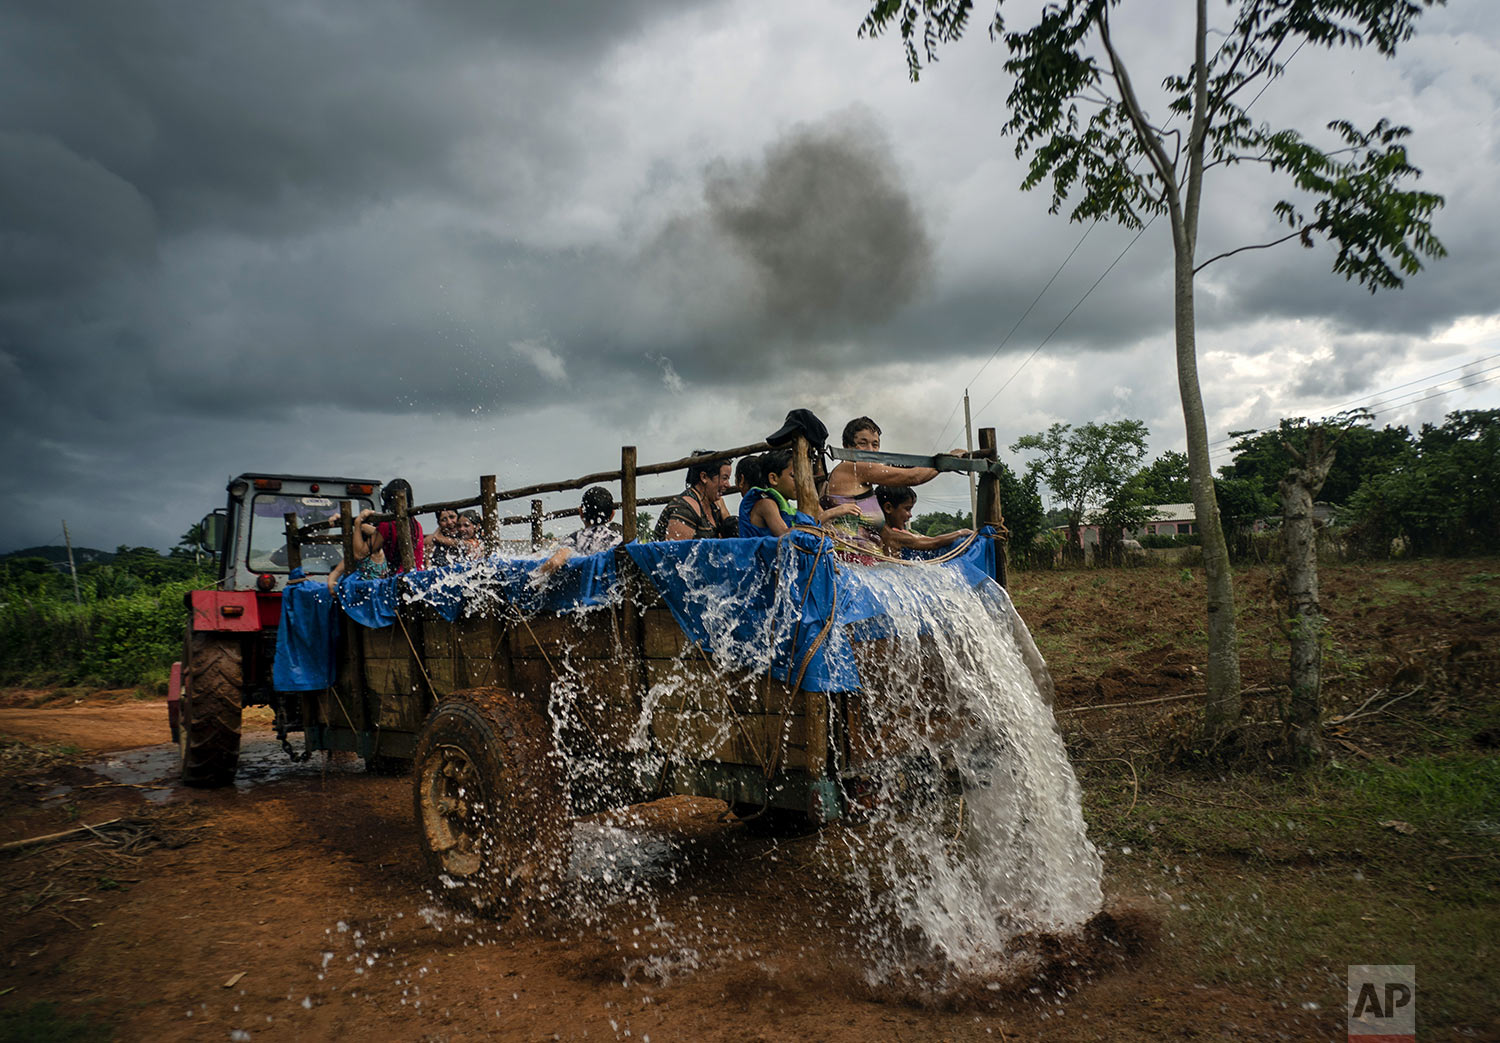 In this Aug. 24, 2019 photo, a girl holds on to the ropes of a swimming pool created in the bed of a tractor trailer in El Infernal neighborhood in San Andres in the province of Pinar del Río, Cuba. (AP Photo/Ramon Espinosa)